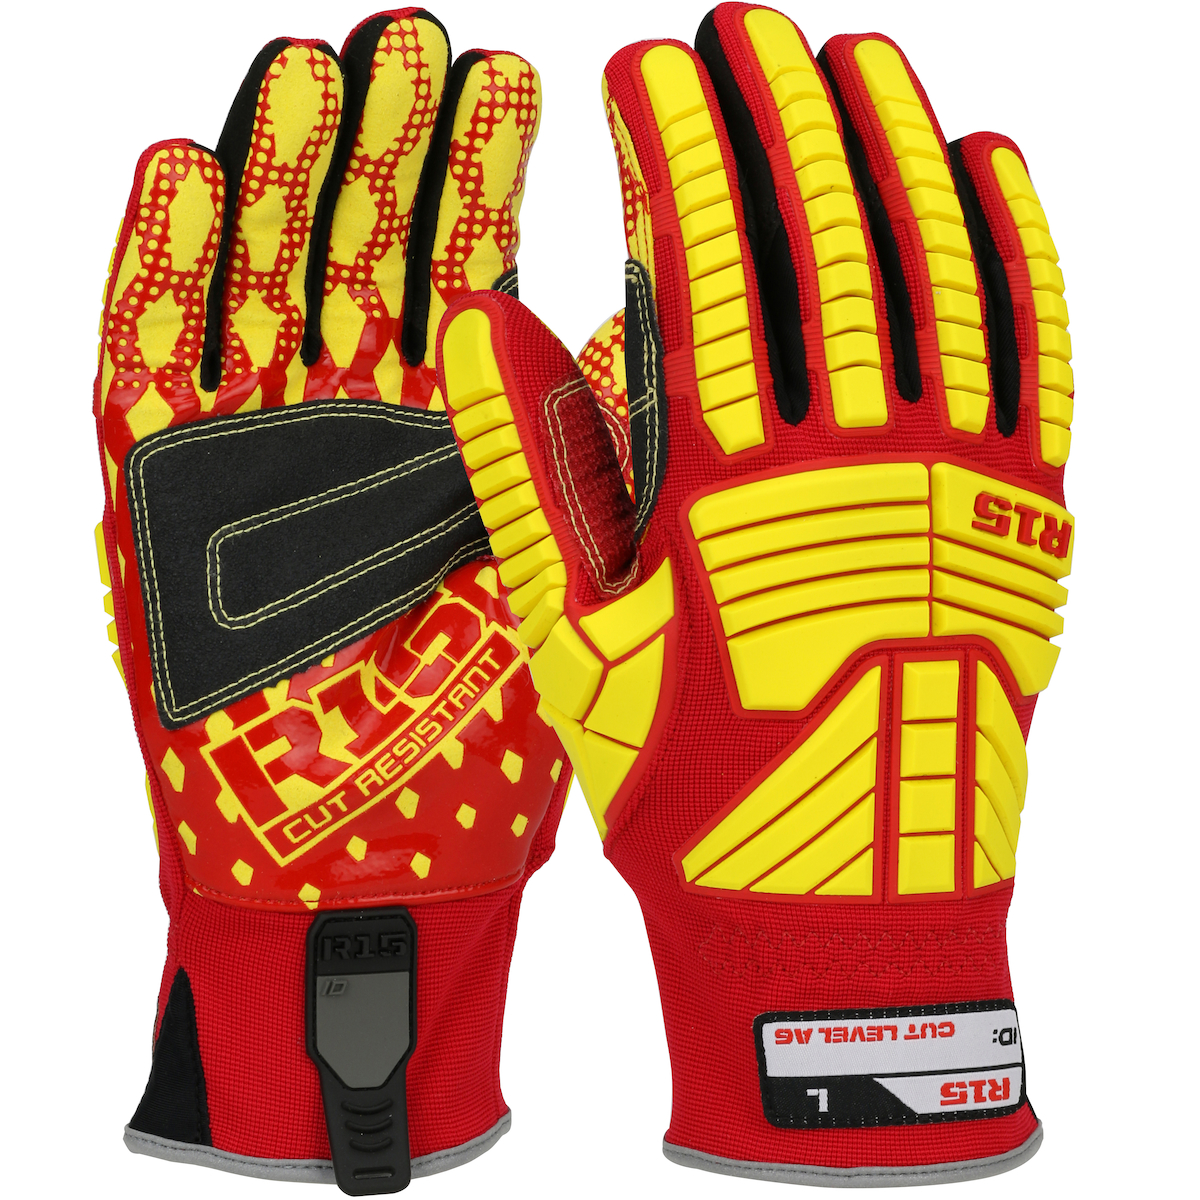 West Chester 87015/M 87015 R15™ Rigger Gloves, Medium, Synthetic Leather, Red/Yellow, Band Top Cuff